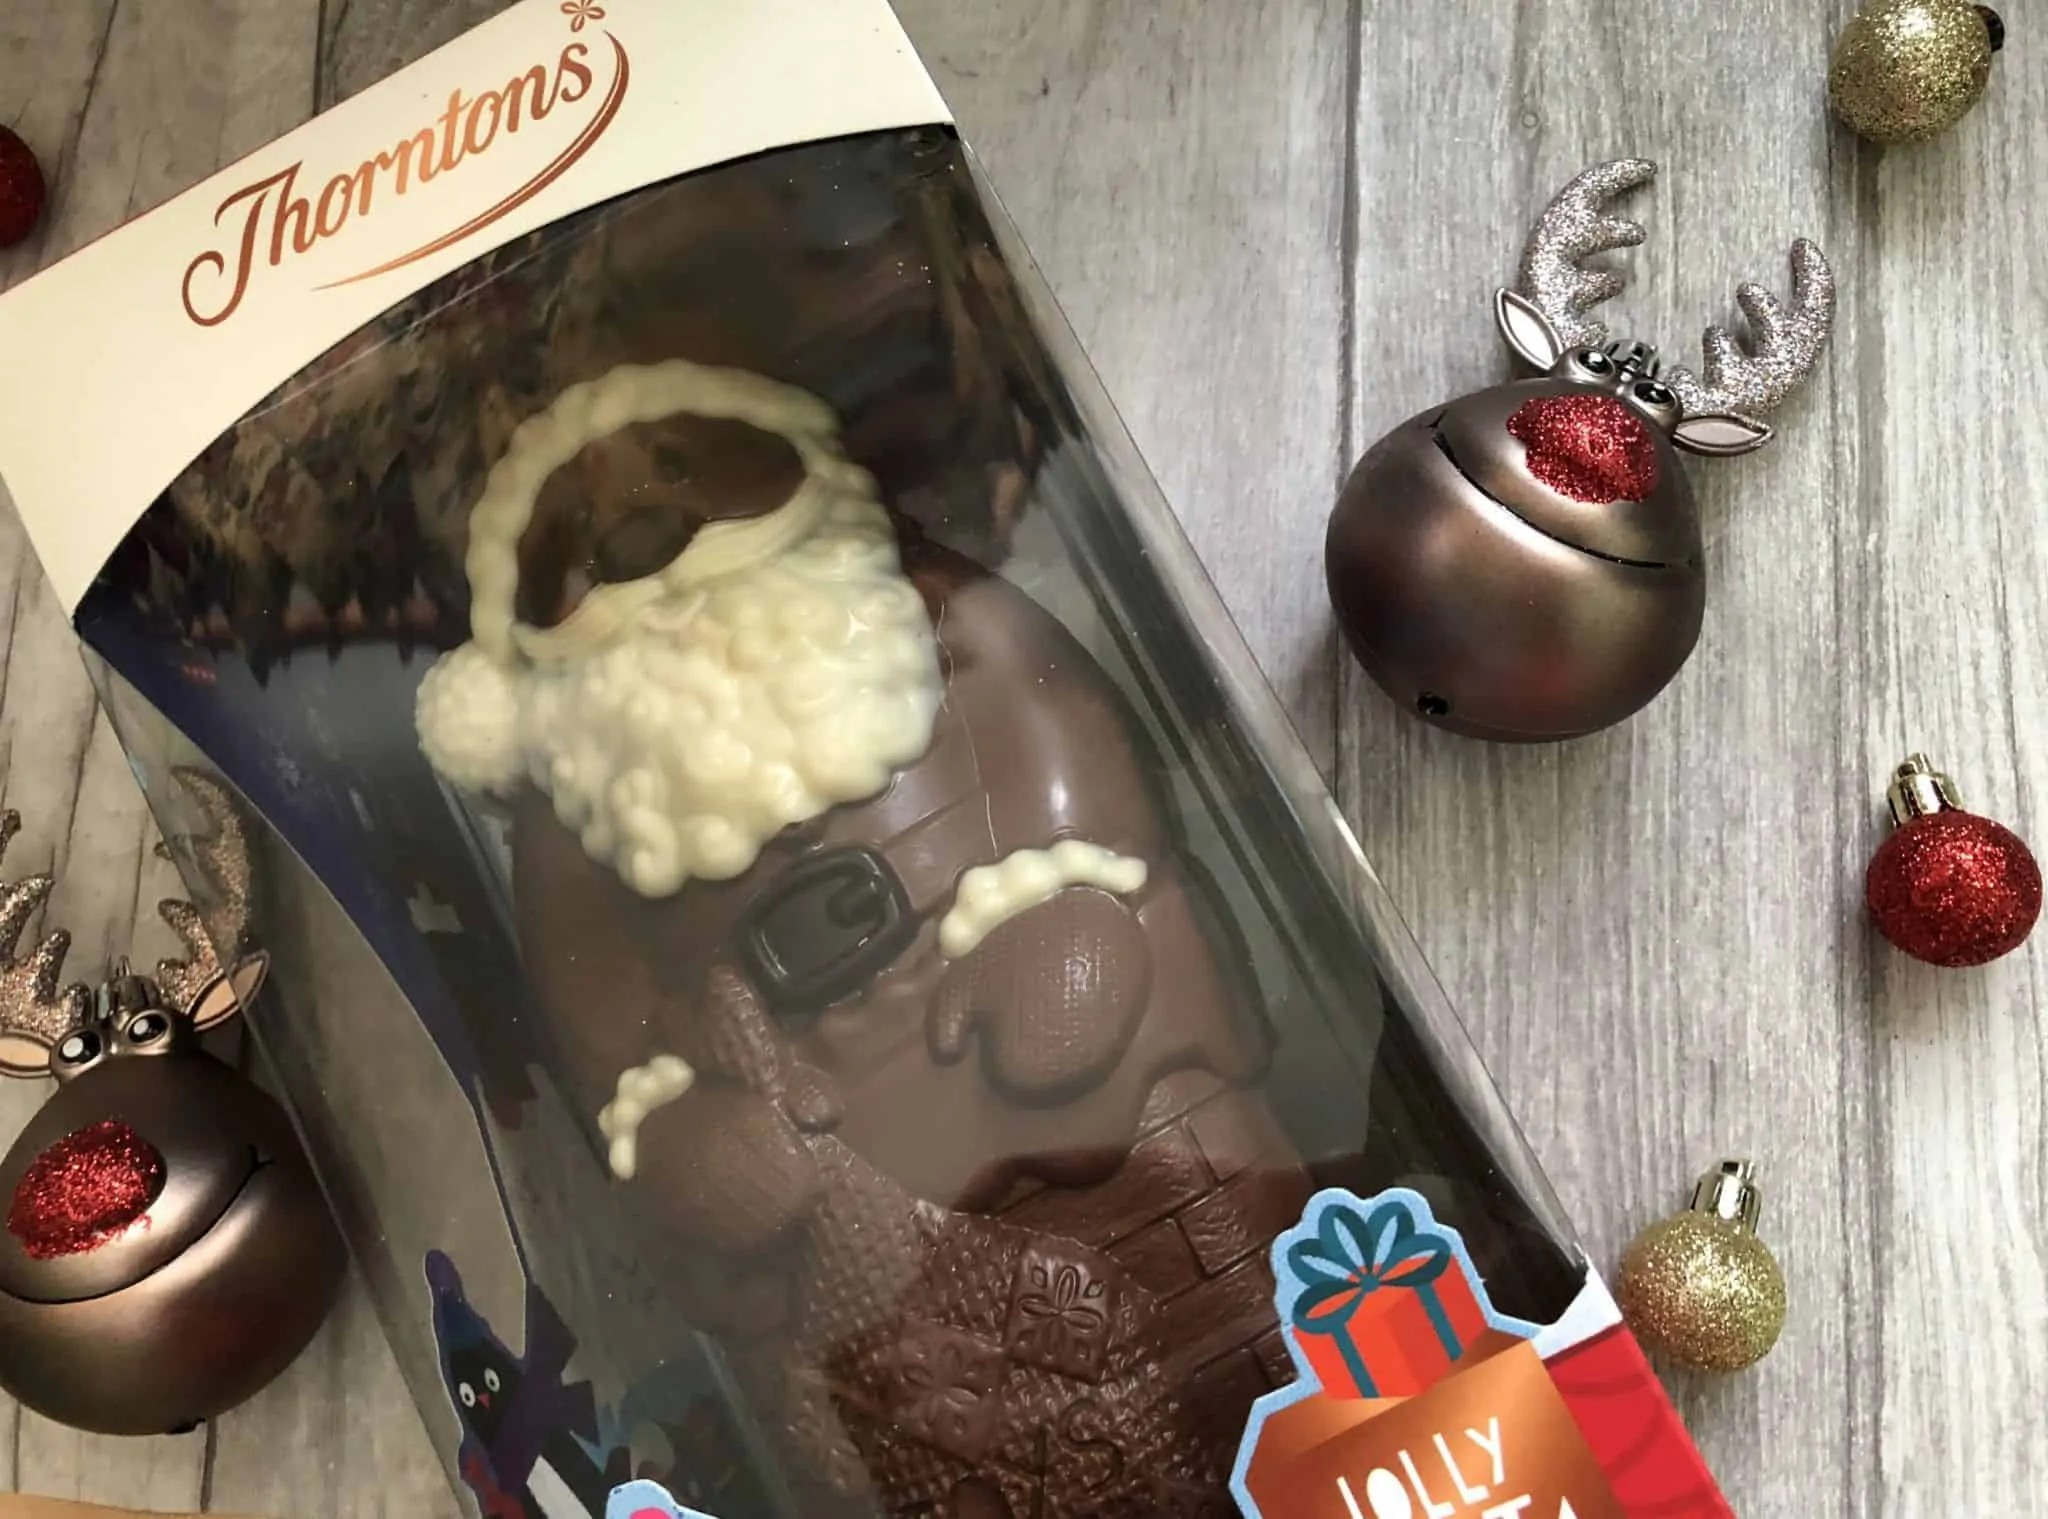 Last minute budget friendly Secret Santa gifts for her from B&M thorntons chocolate santa